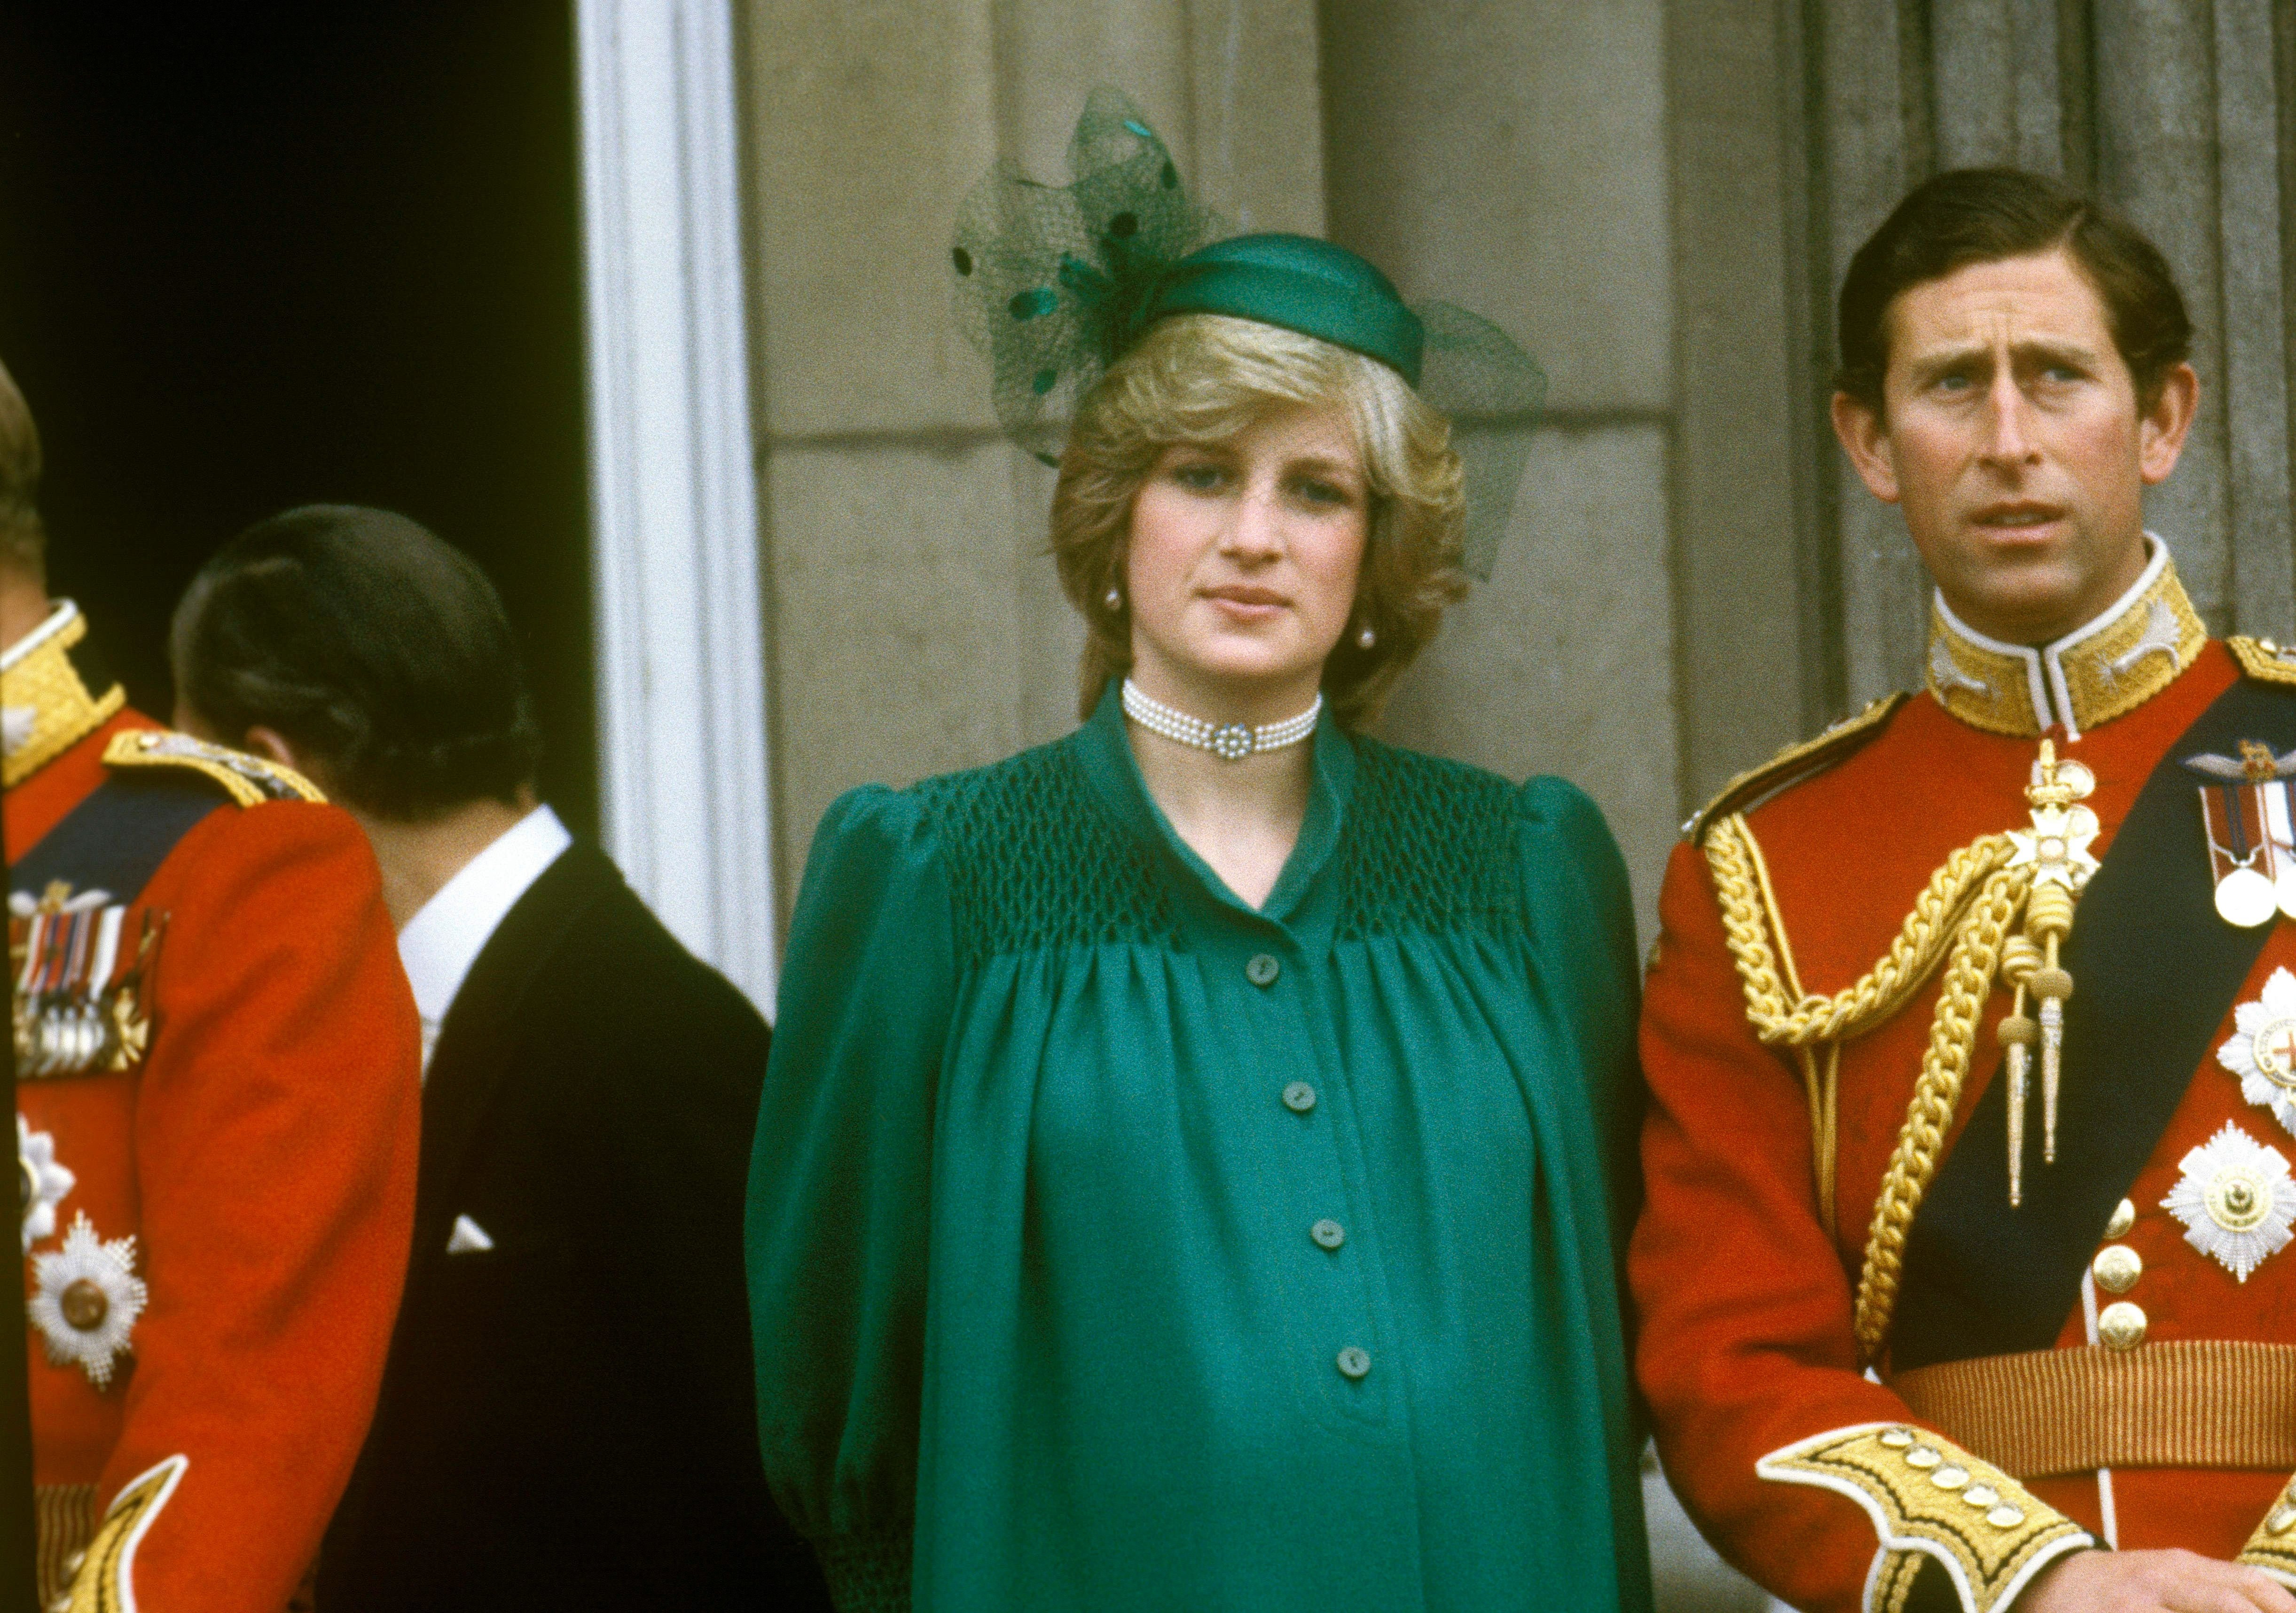 Princess Diana in her famous outifit / Getty Images